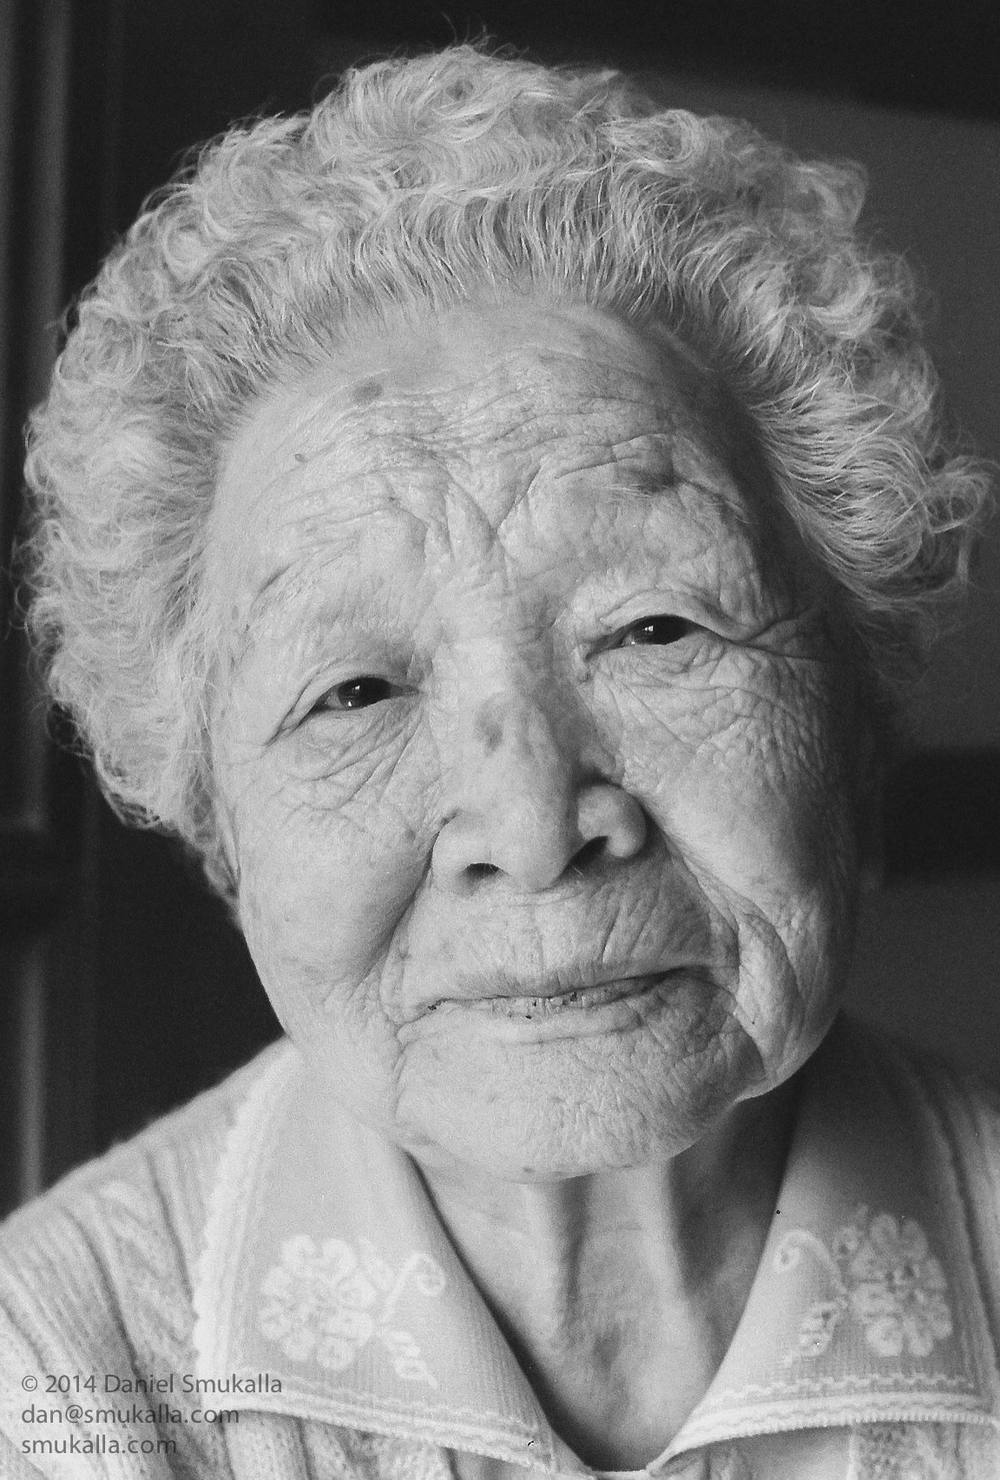 91YearOldPortrait-B&W.jpg